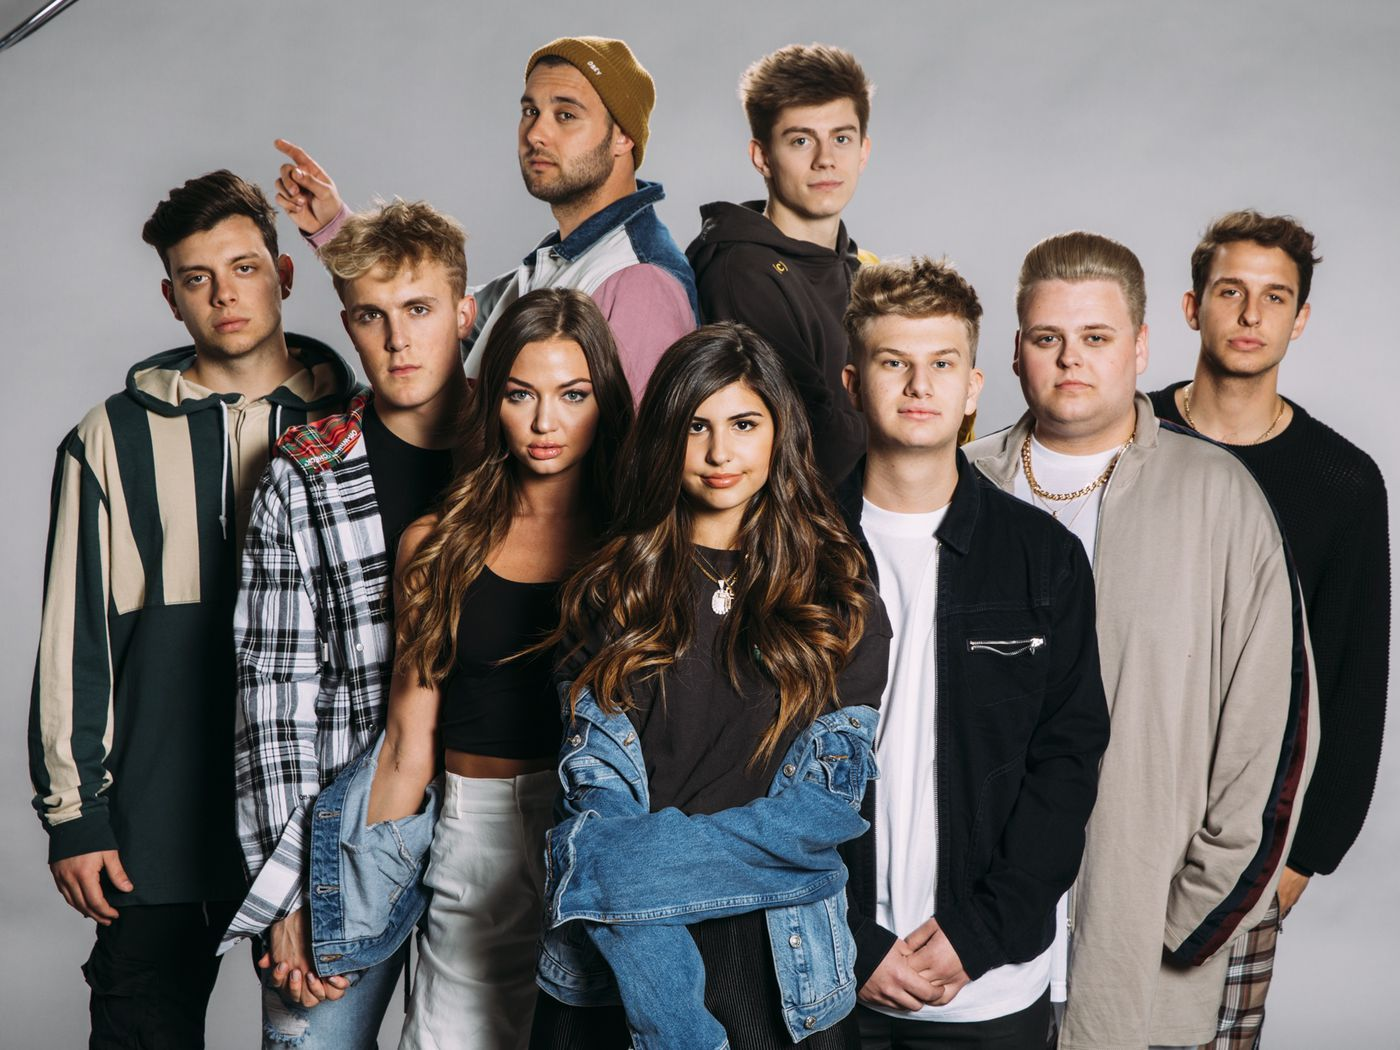 Jake Pauls Team 10 Youtube Empire Might Be Imploding Polygon